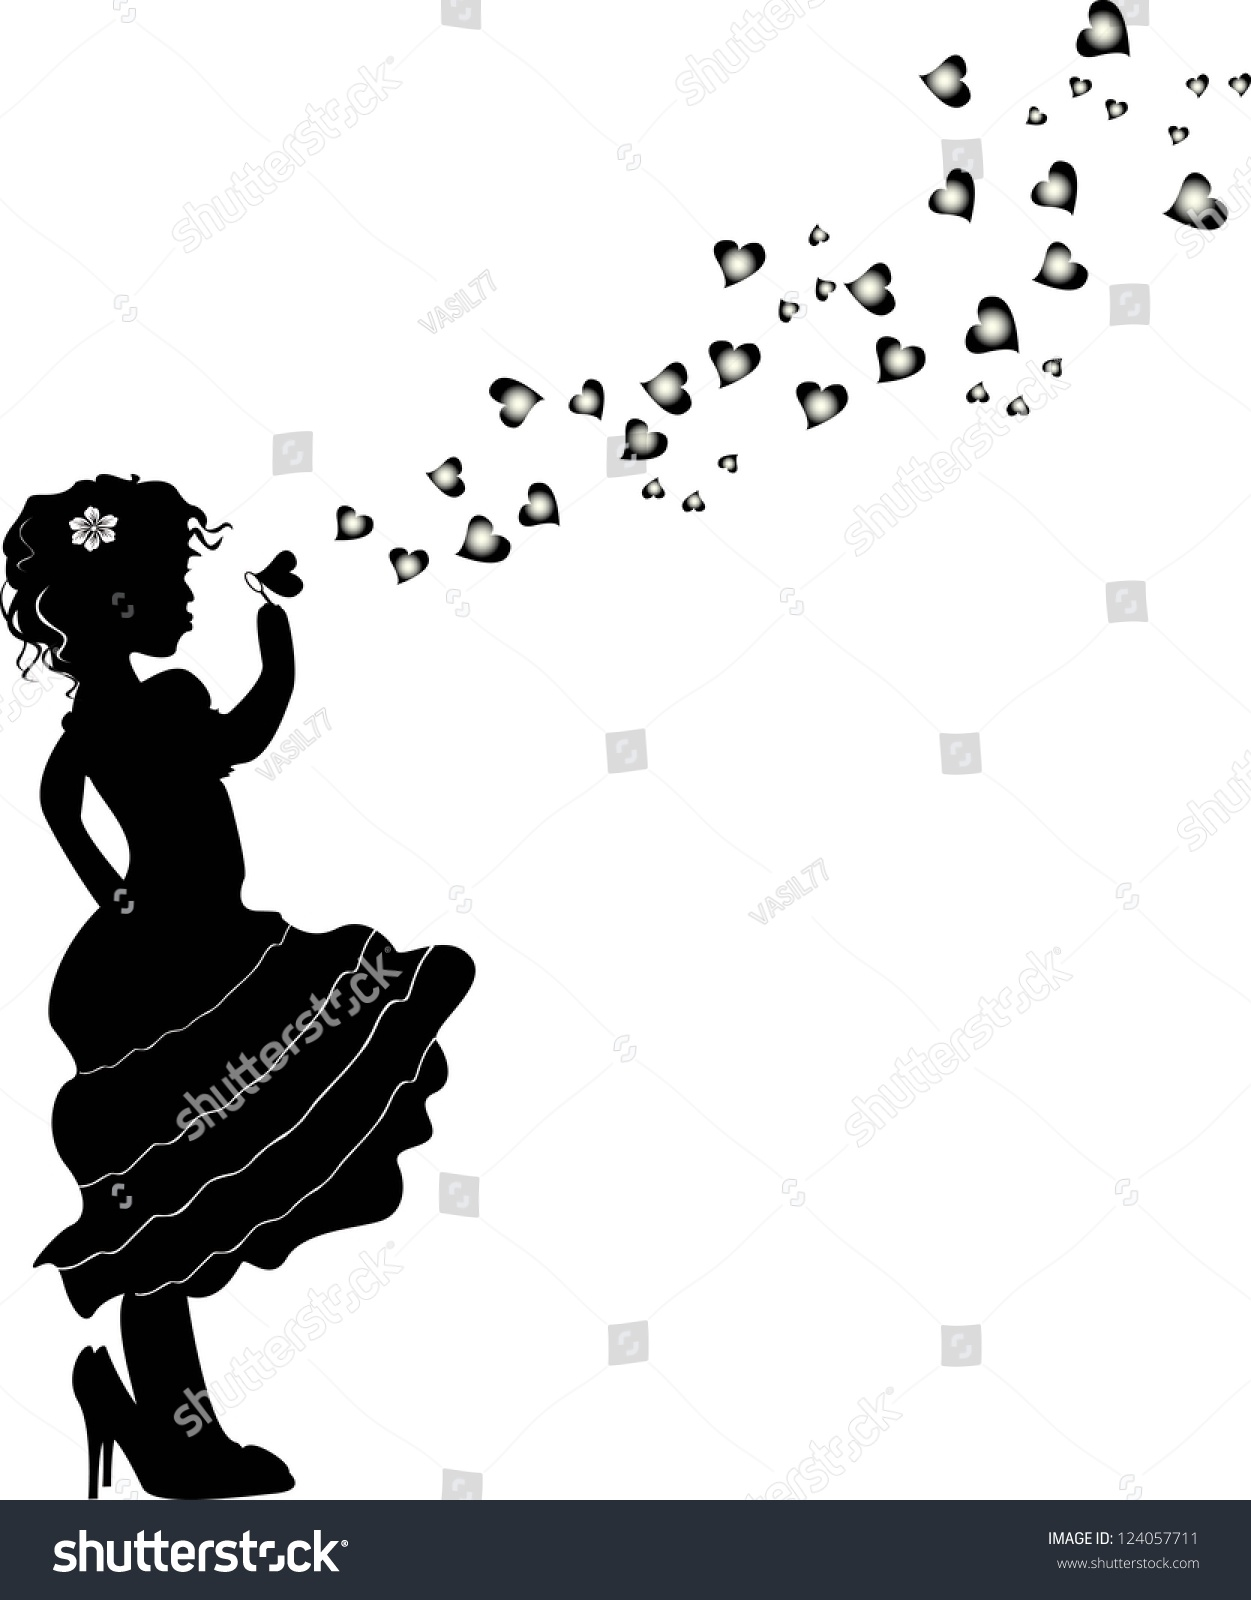 Girl Blowing Bubbles Vector Stock Vector 124057711 ...